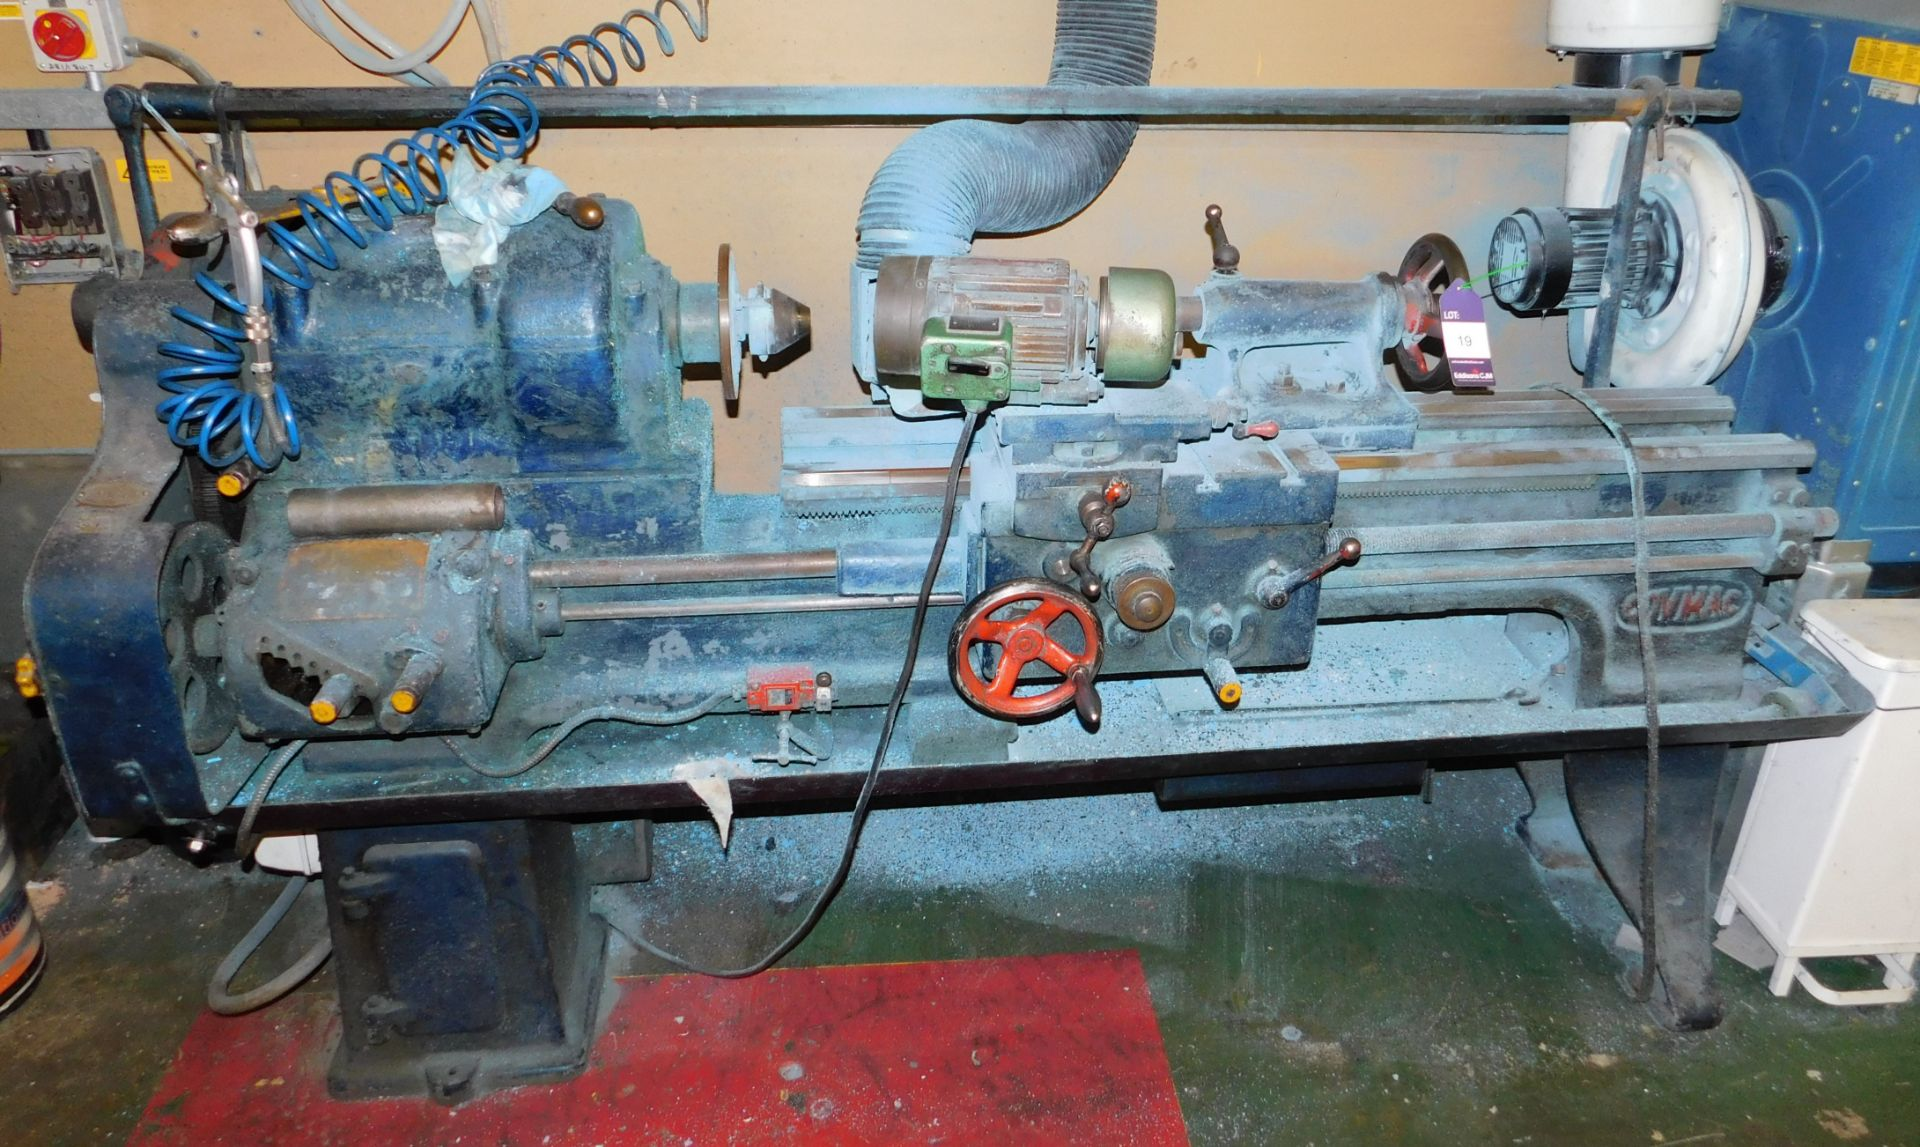 Lot 19 - Covmac Lathe (Skims Rollers) *Please note that the